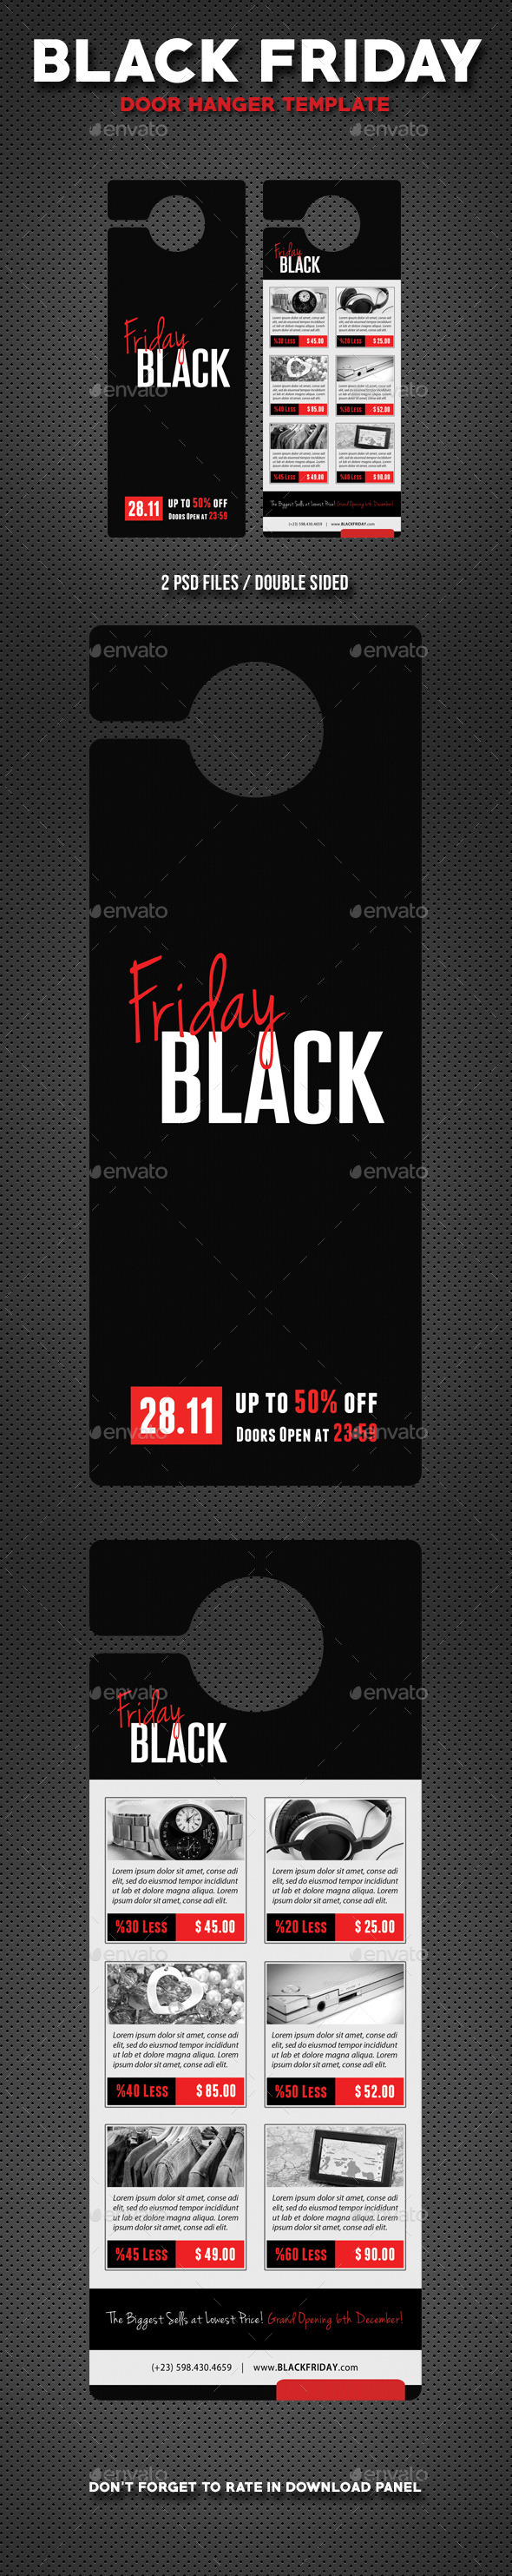 Black Friday Door Hanger V4 - Miscellaneous Print Templates